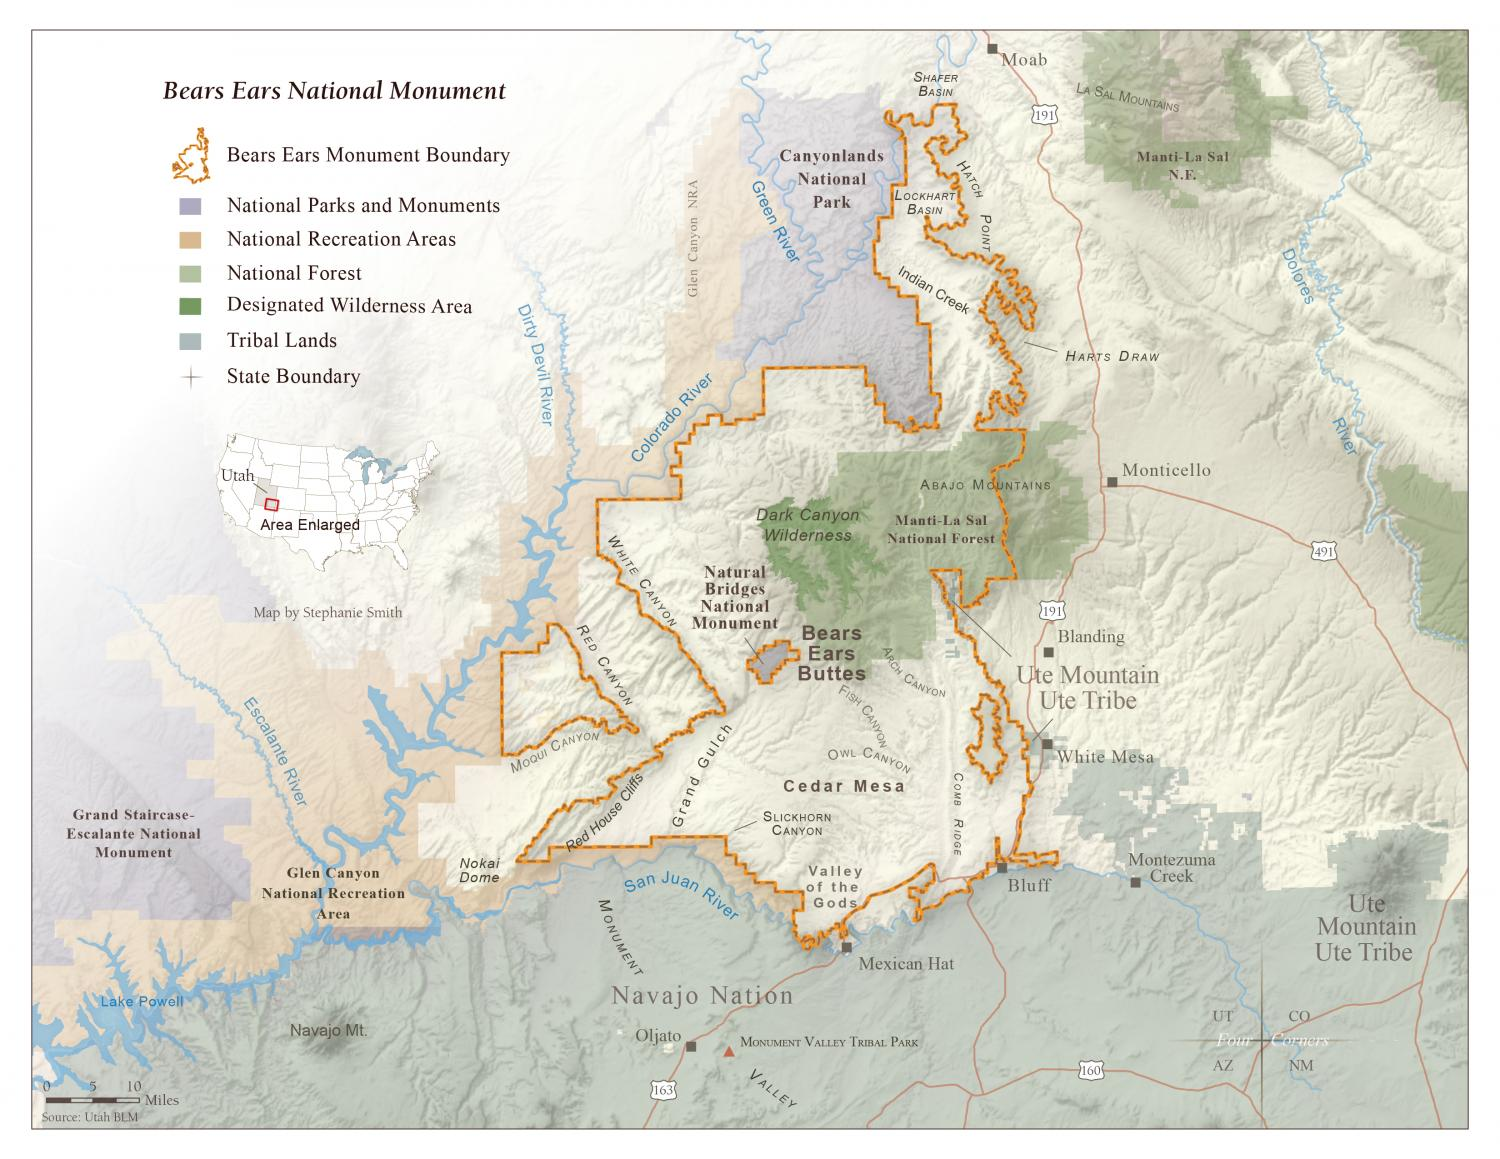 Map of Bears Ears National Monument